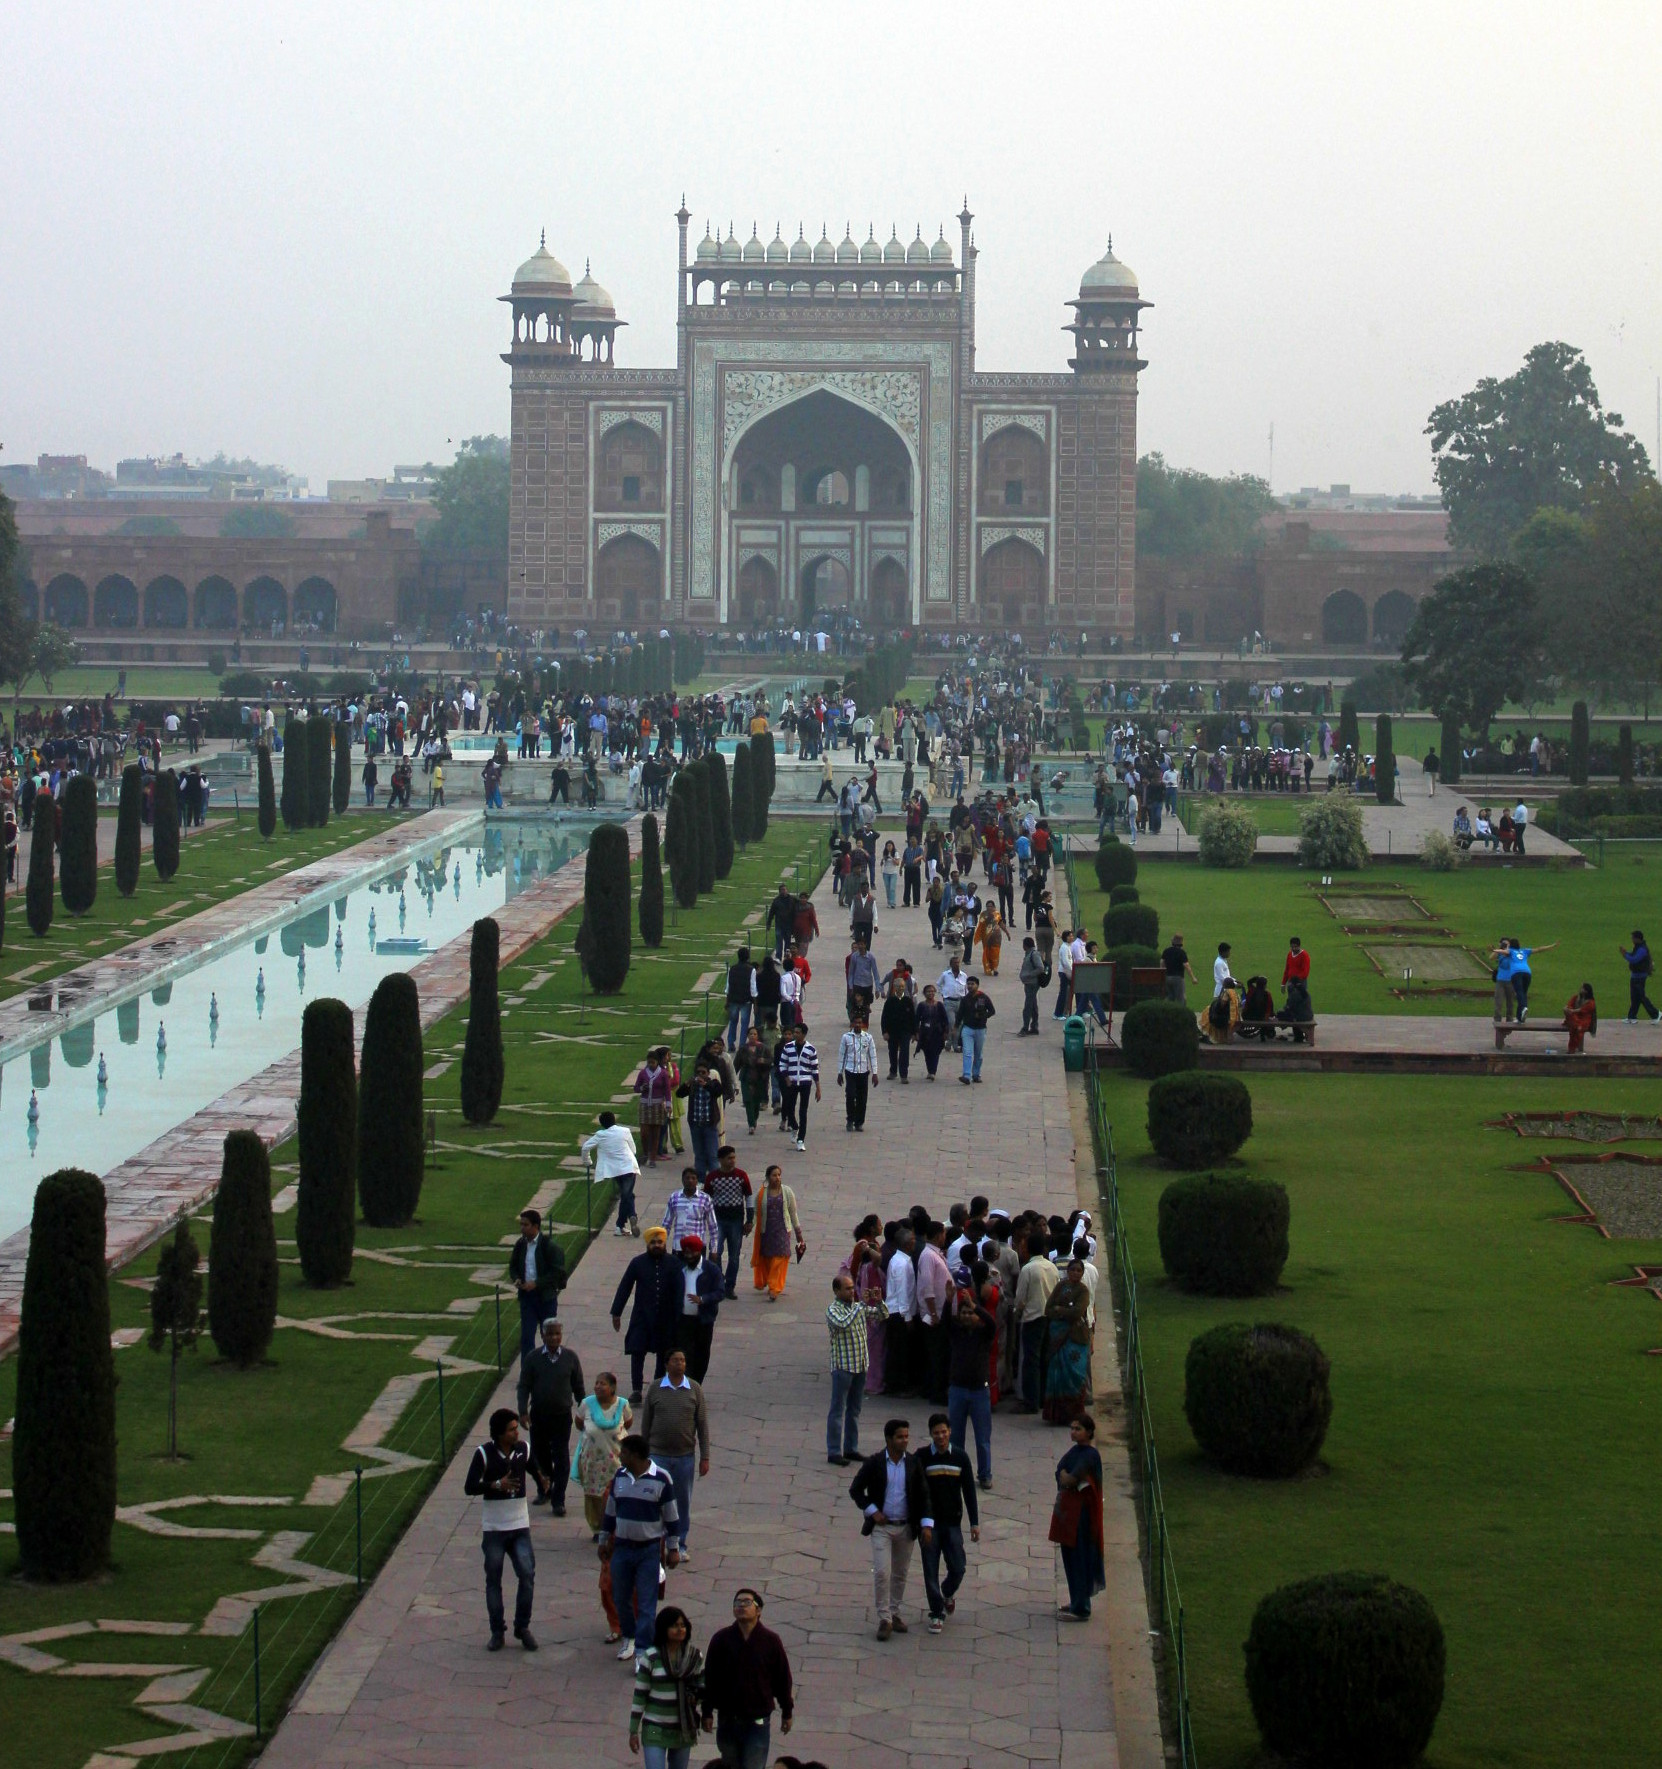 We entered the Charbagh